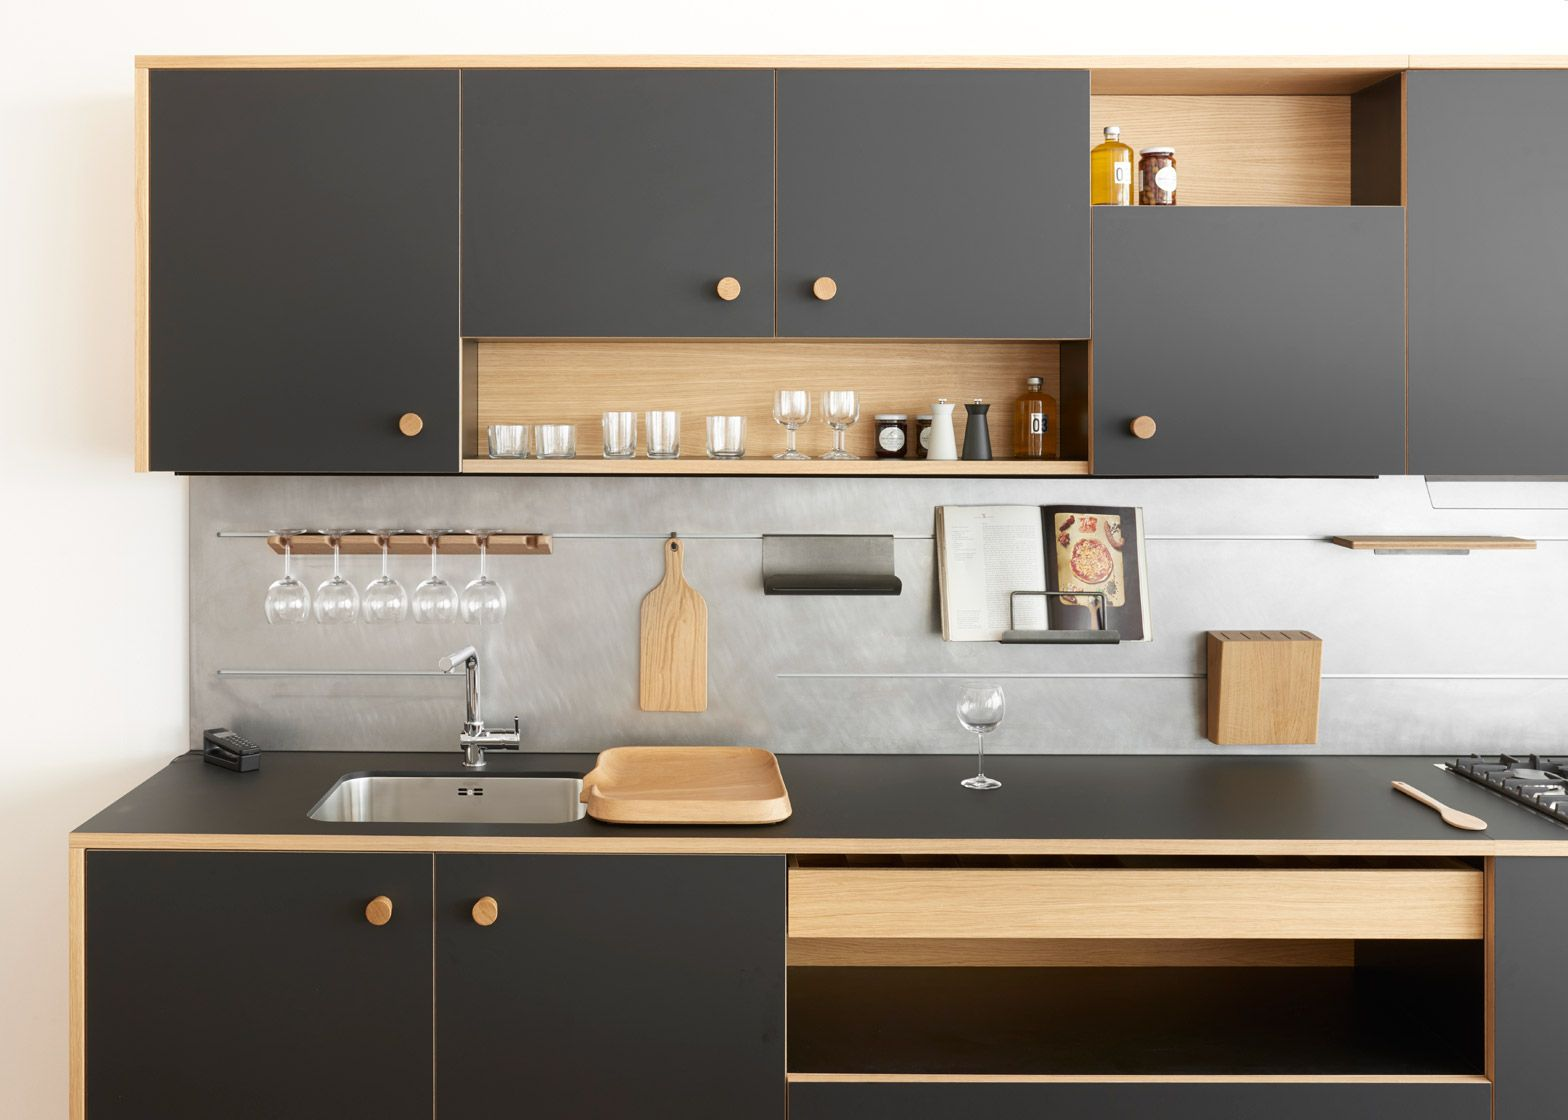 Kitchen Design Companies Pleasing Jasper Morrison Reveals First Kitchen Design For Schiffini Inspiration